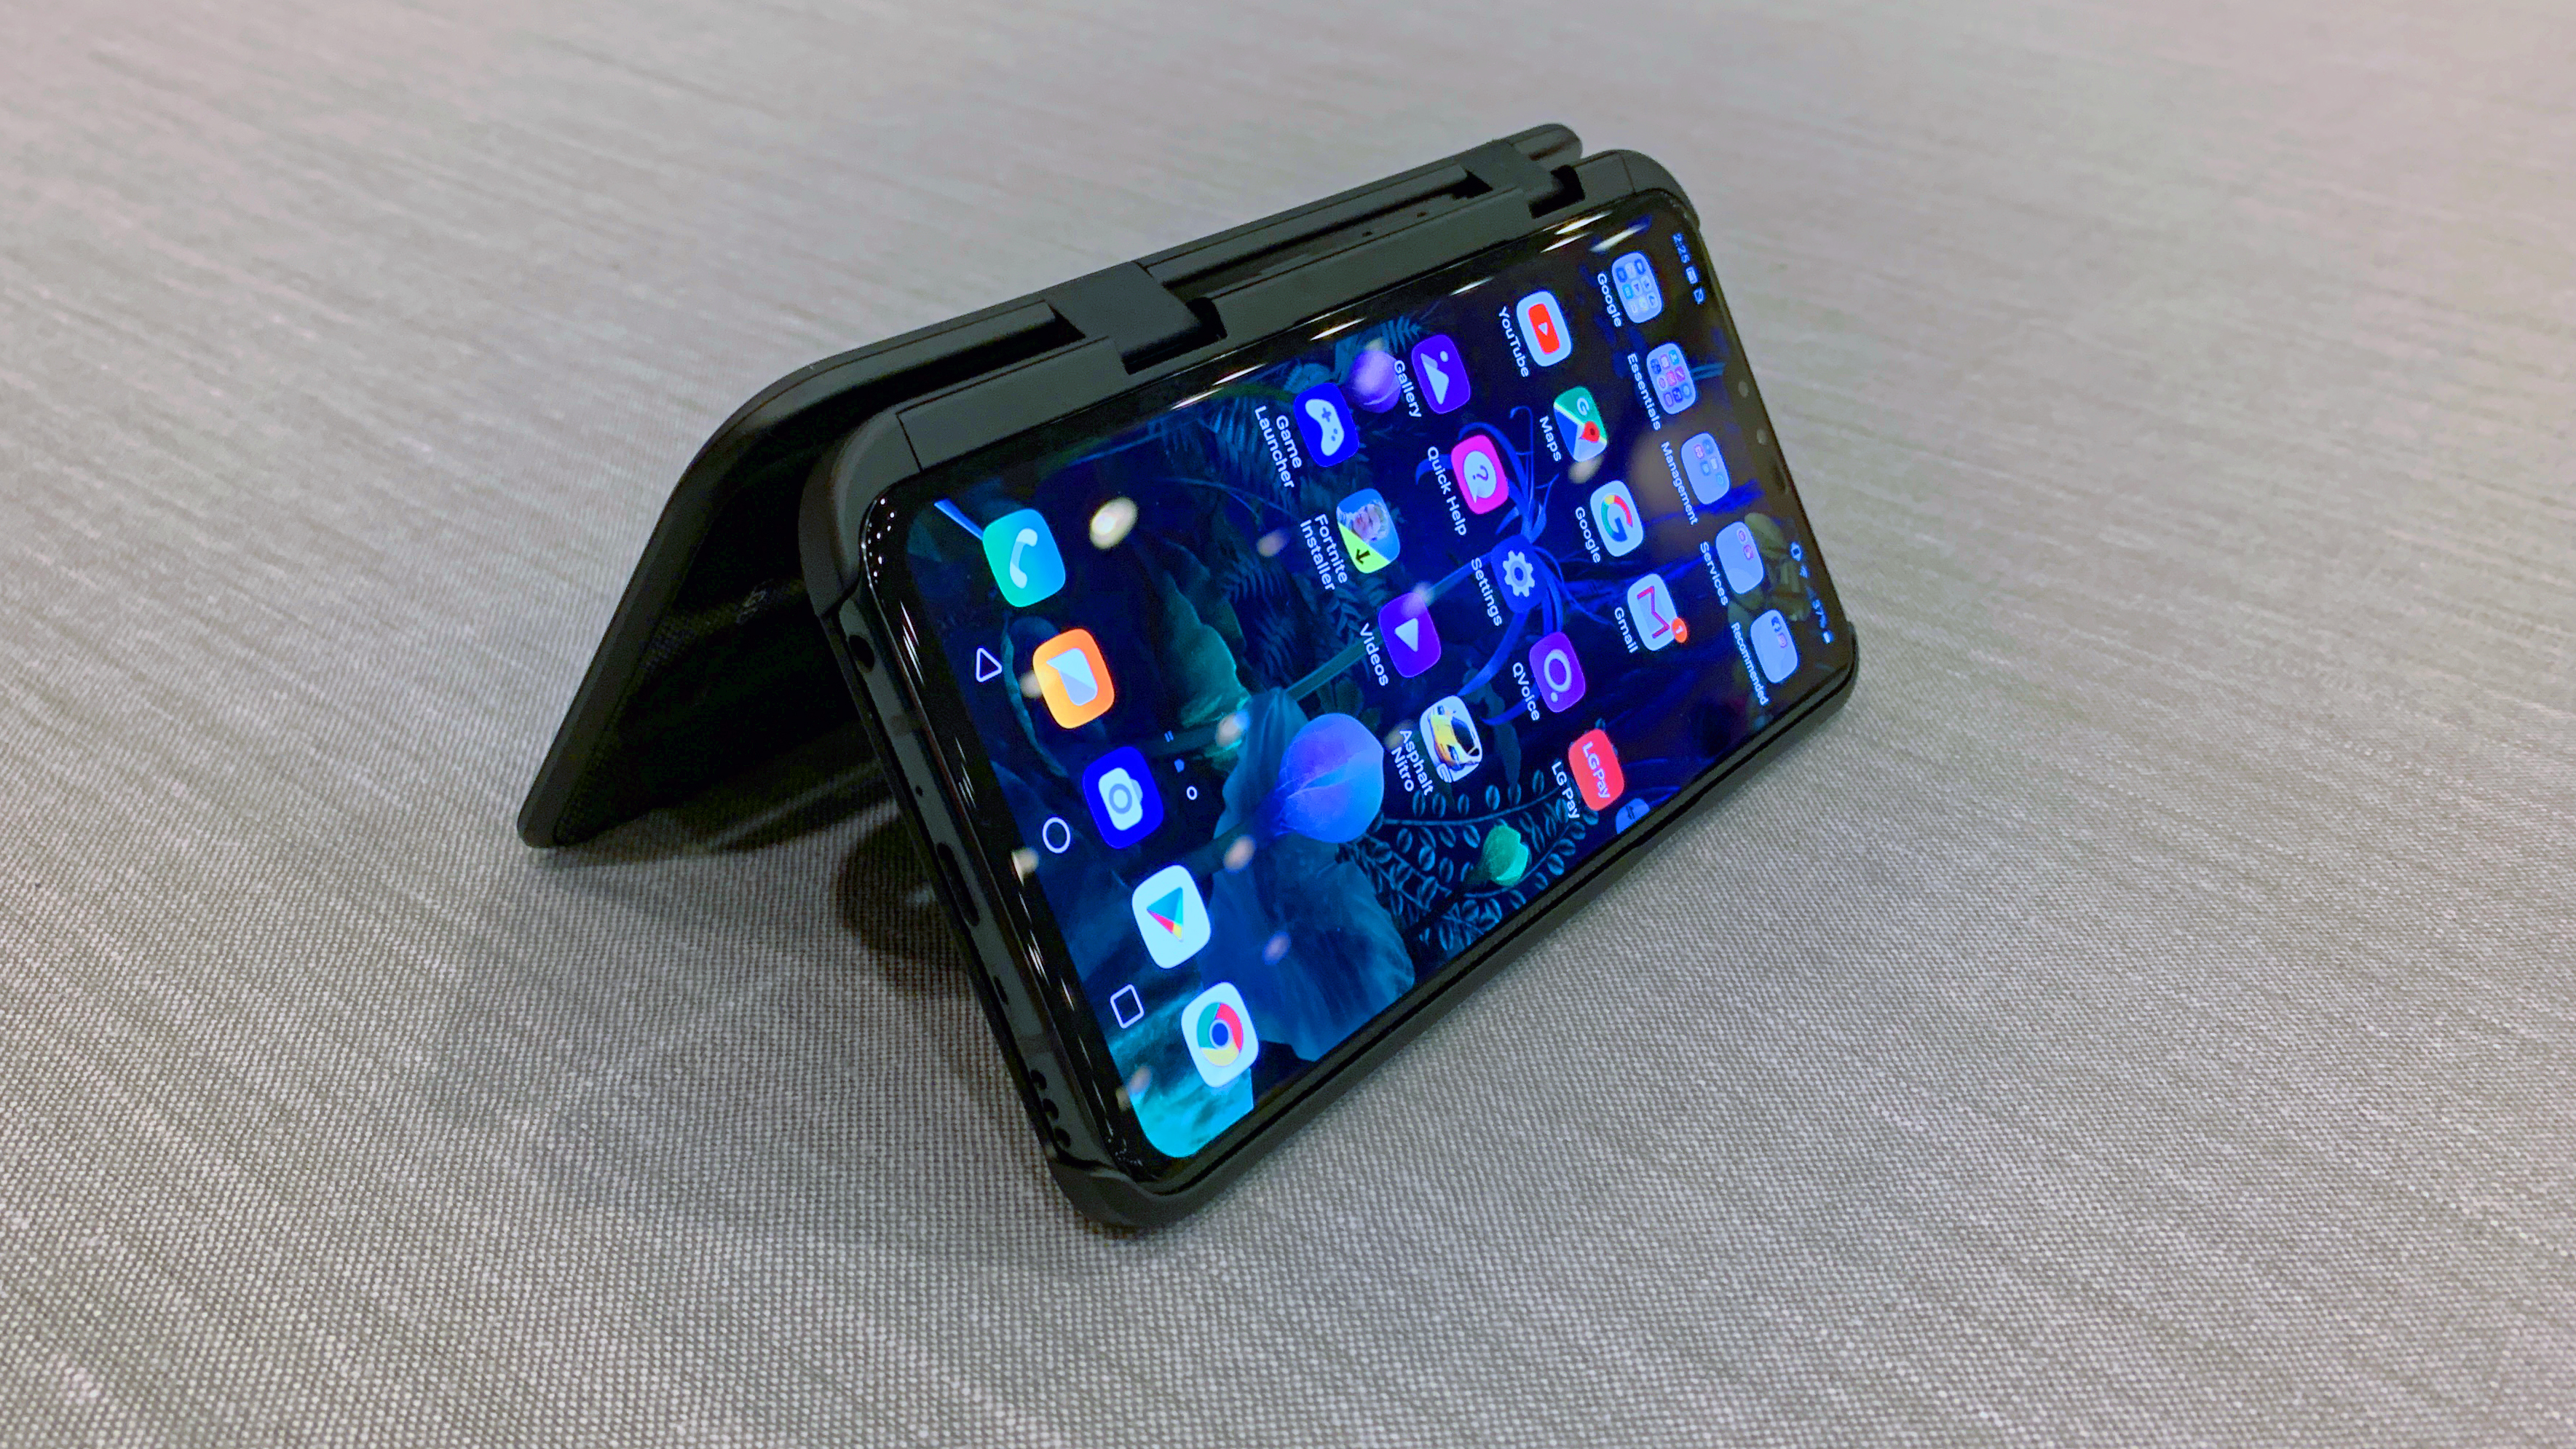 LG DualScreen: first look at LG's alternative to foldable